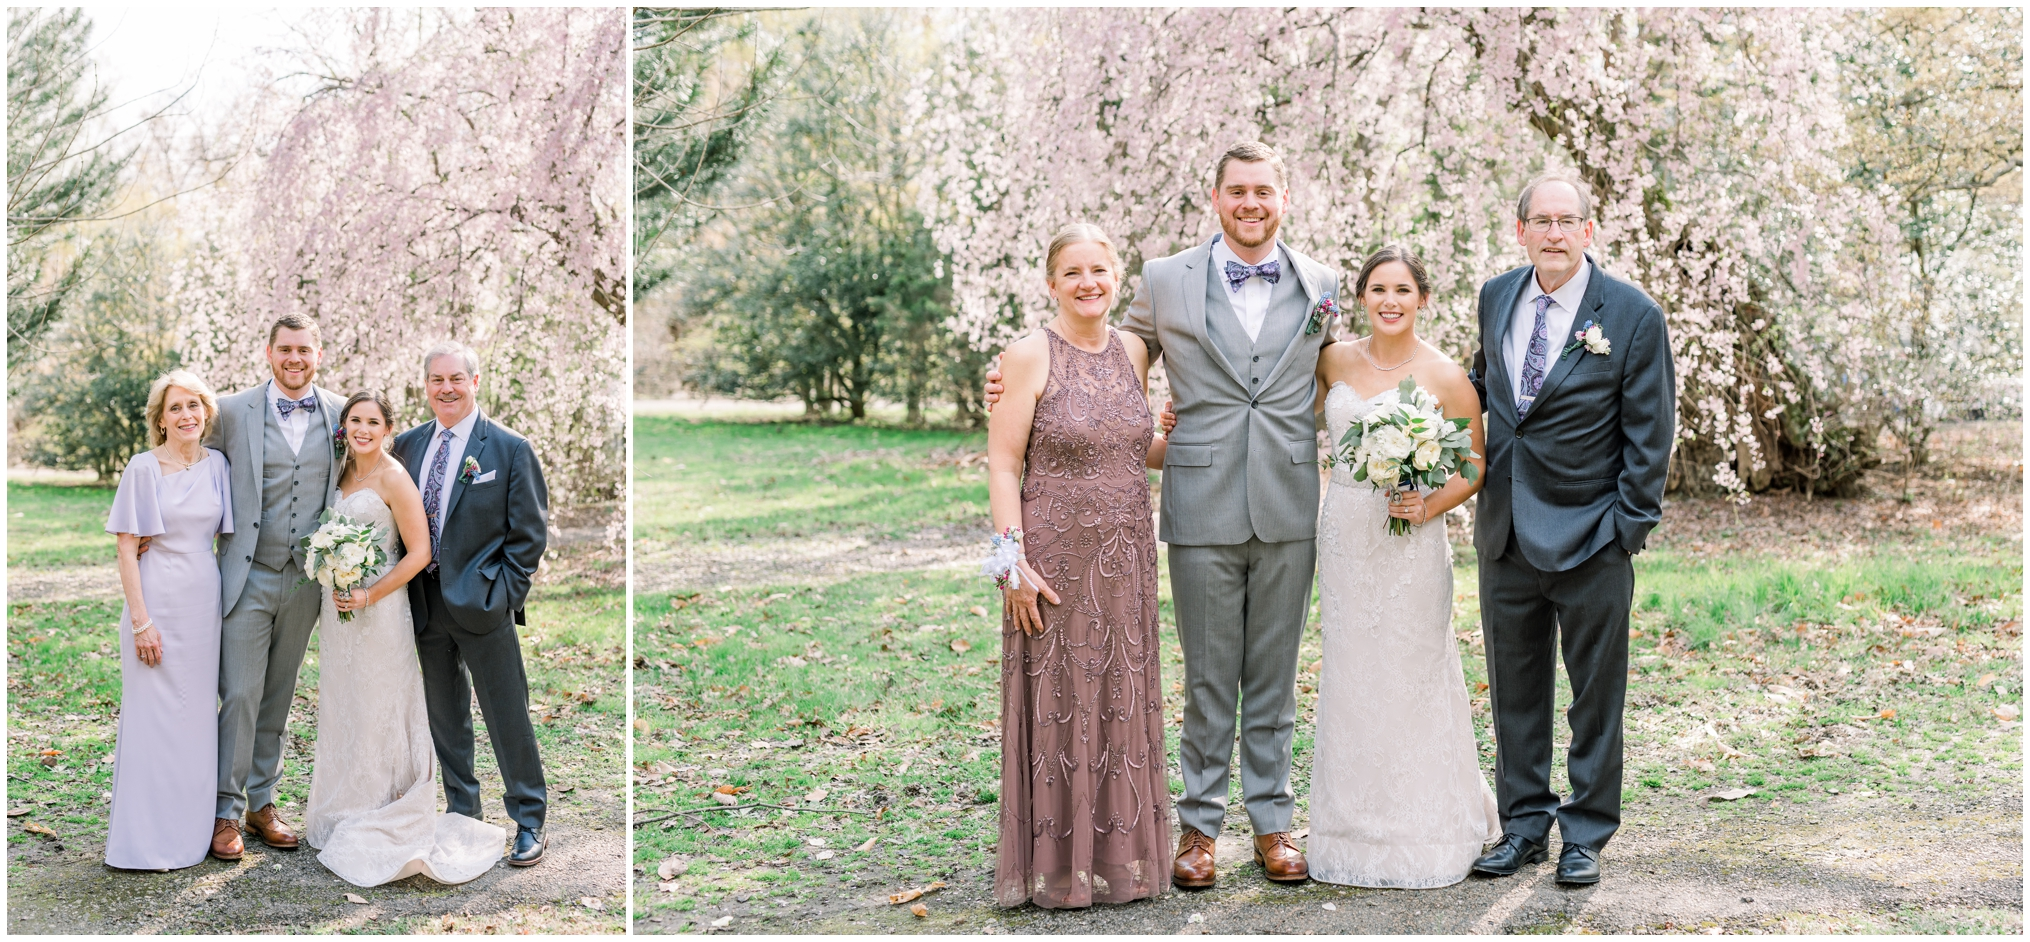 Krista Brackin Photography | April Wedding at The Carriage House at Rockwood Park_0051.jpg